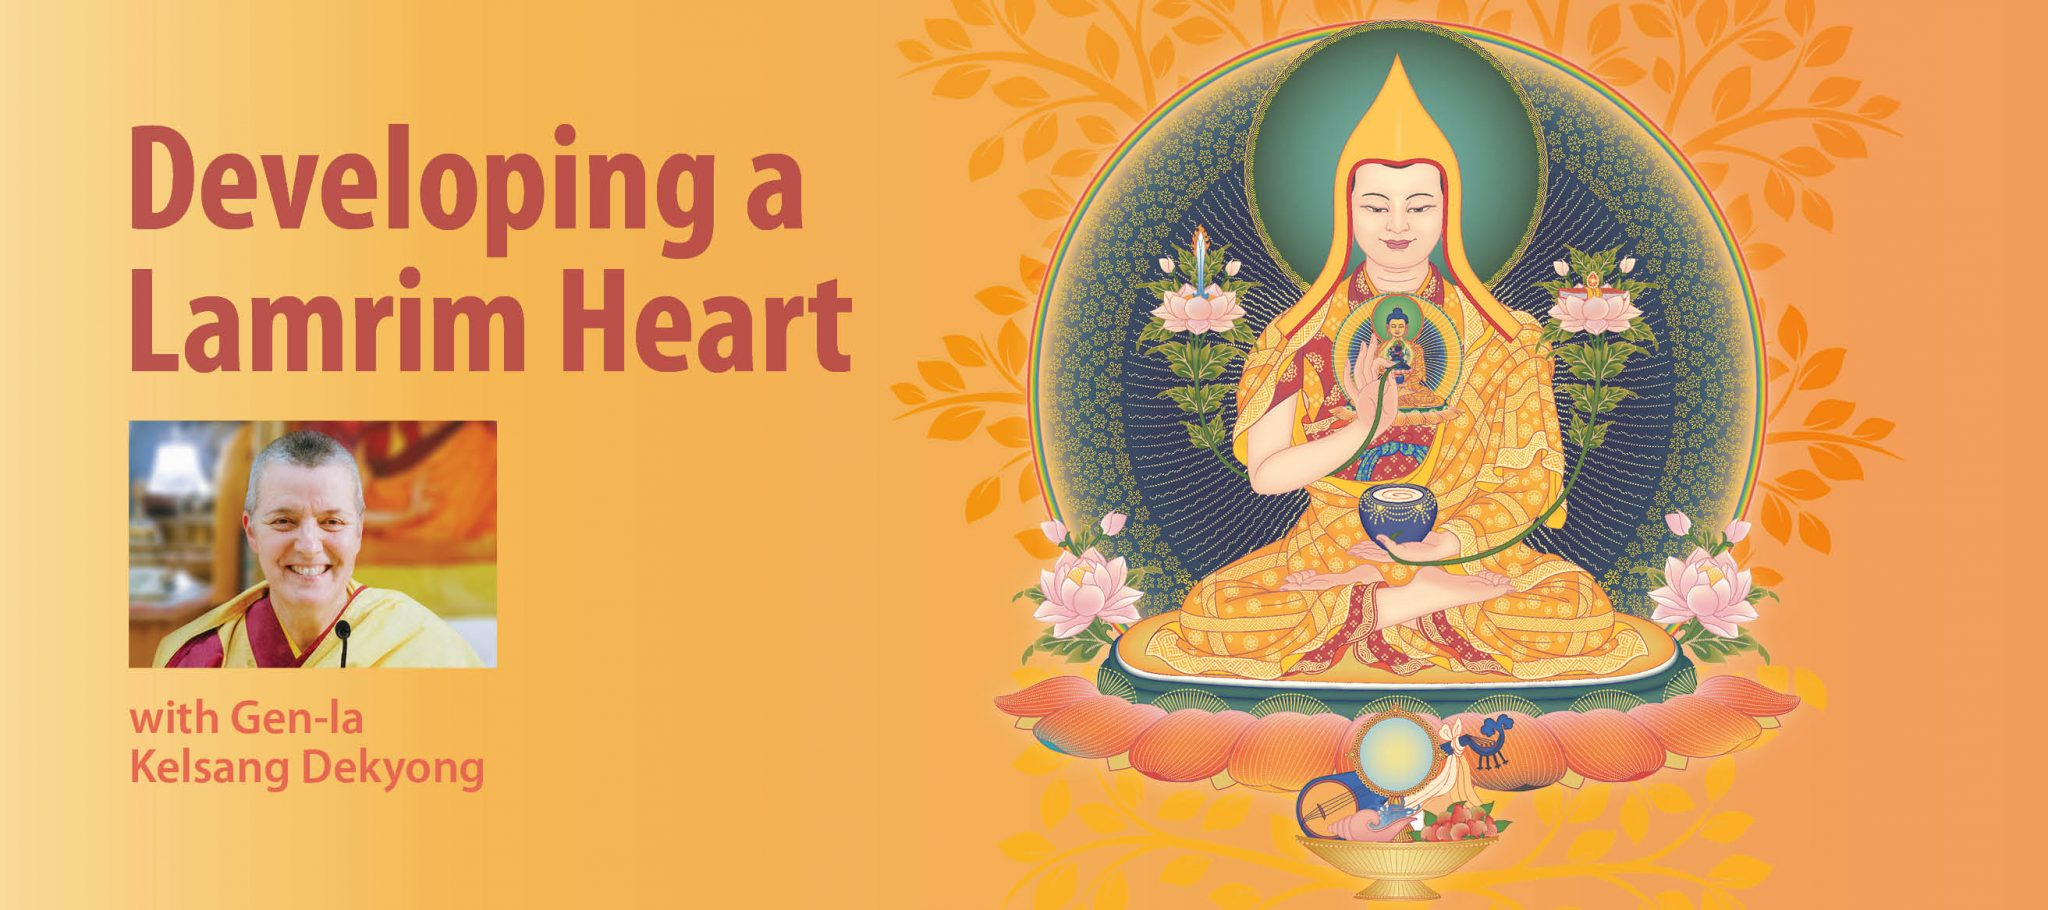 Lamrim Heart Website image